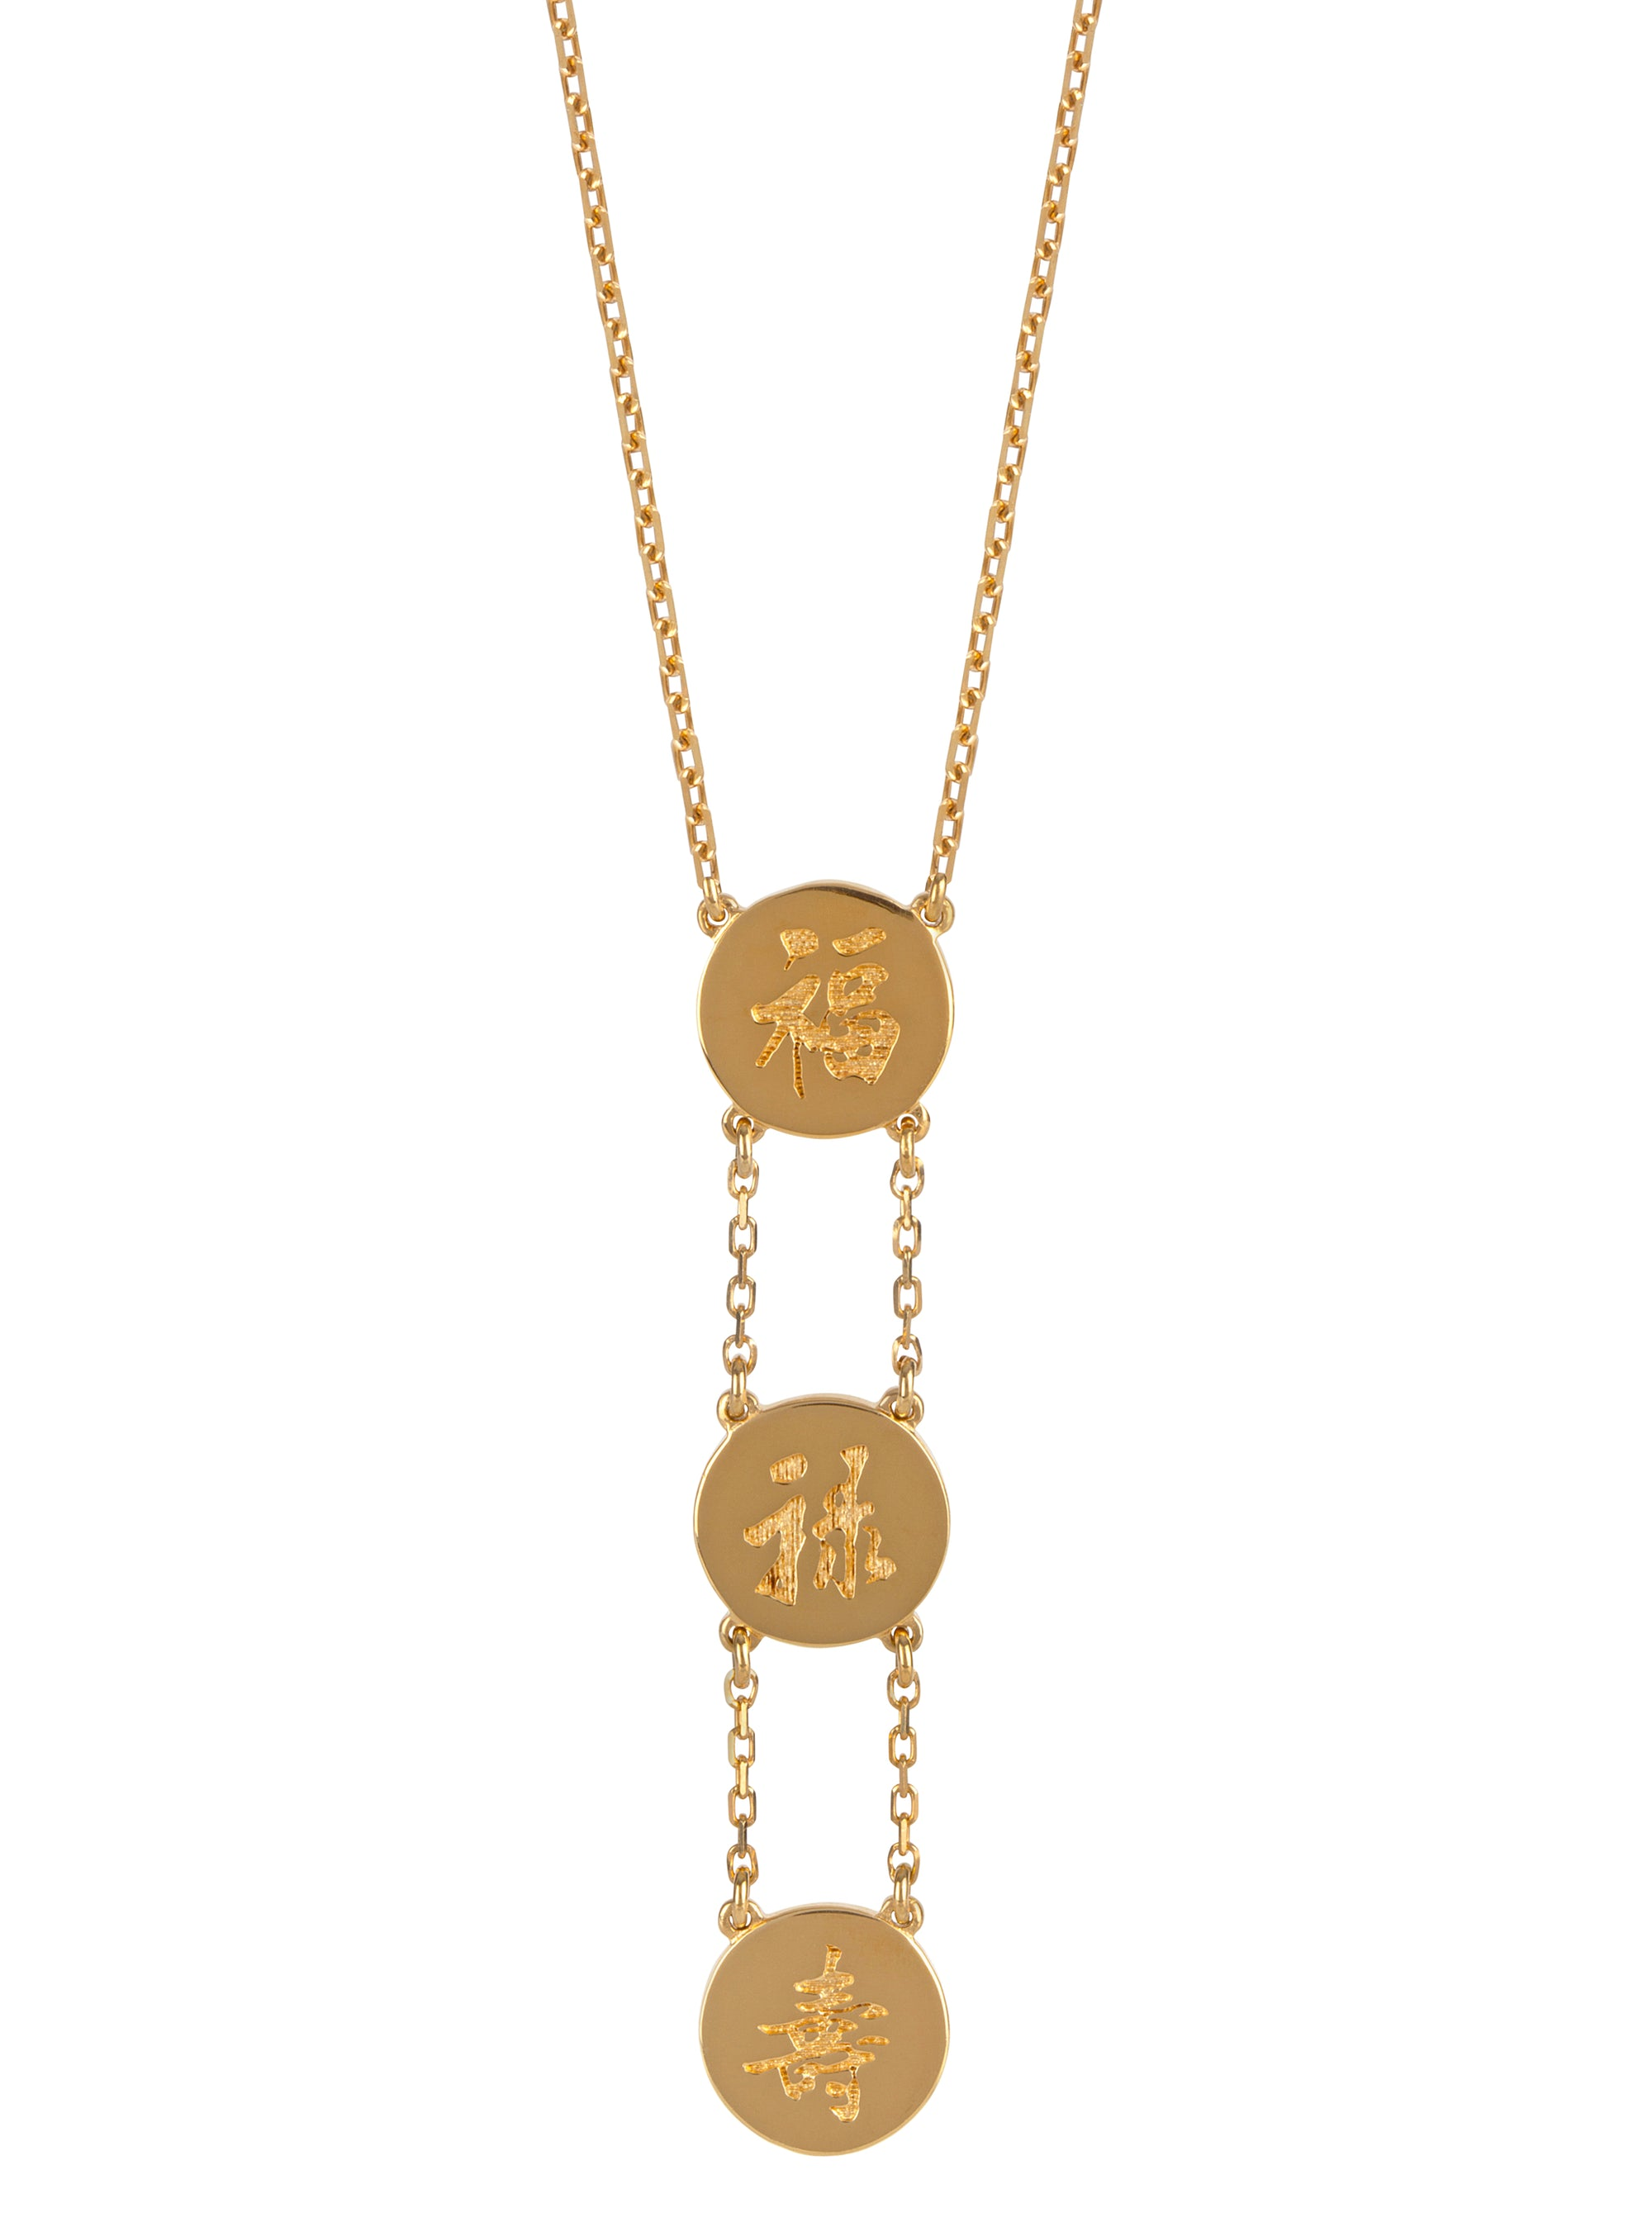 THREE LUCKY STARS SOLID GOLD NECKLACE (Symbolising Luck, Prosperity and Longevity)